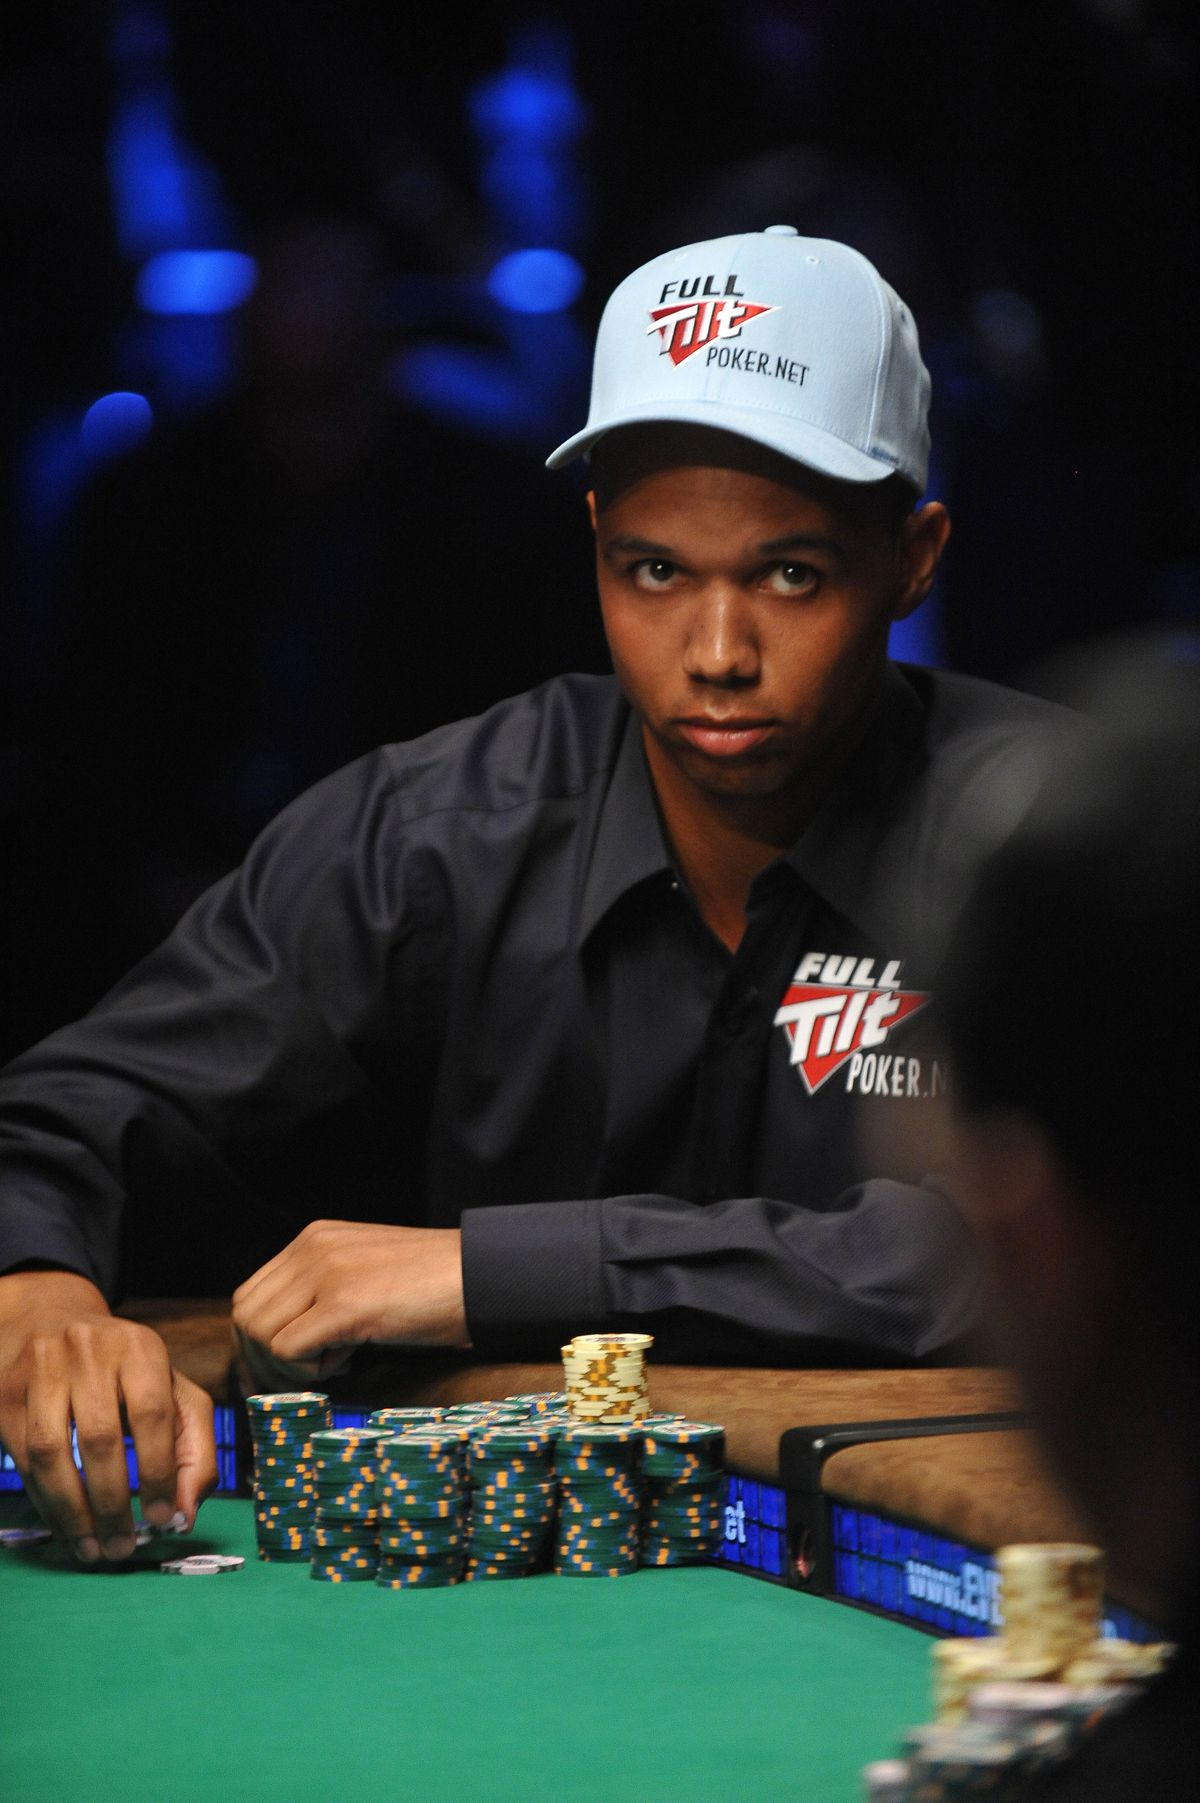 Phil Ivey at the 2009 World Series of Poker (GettyImages)